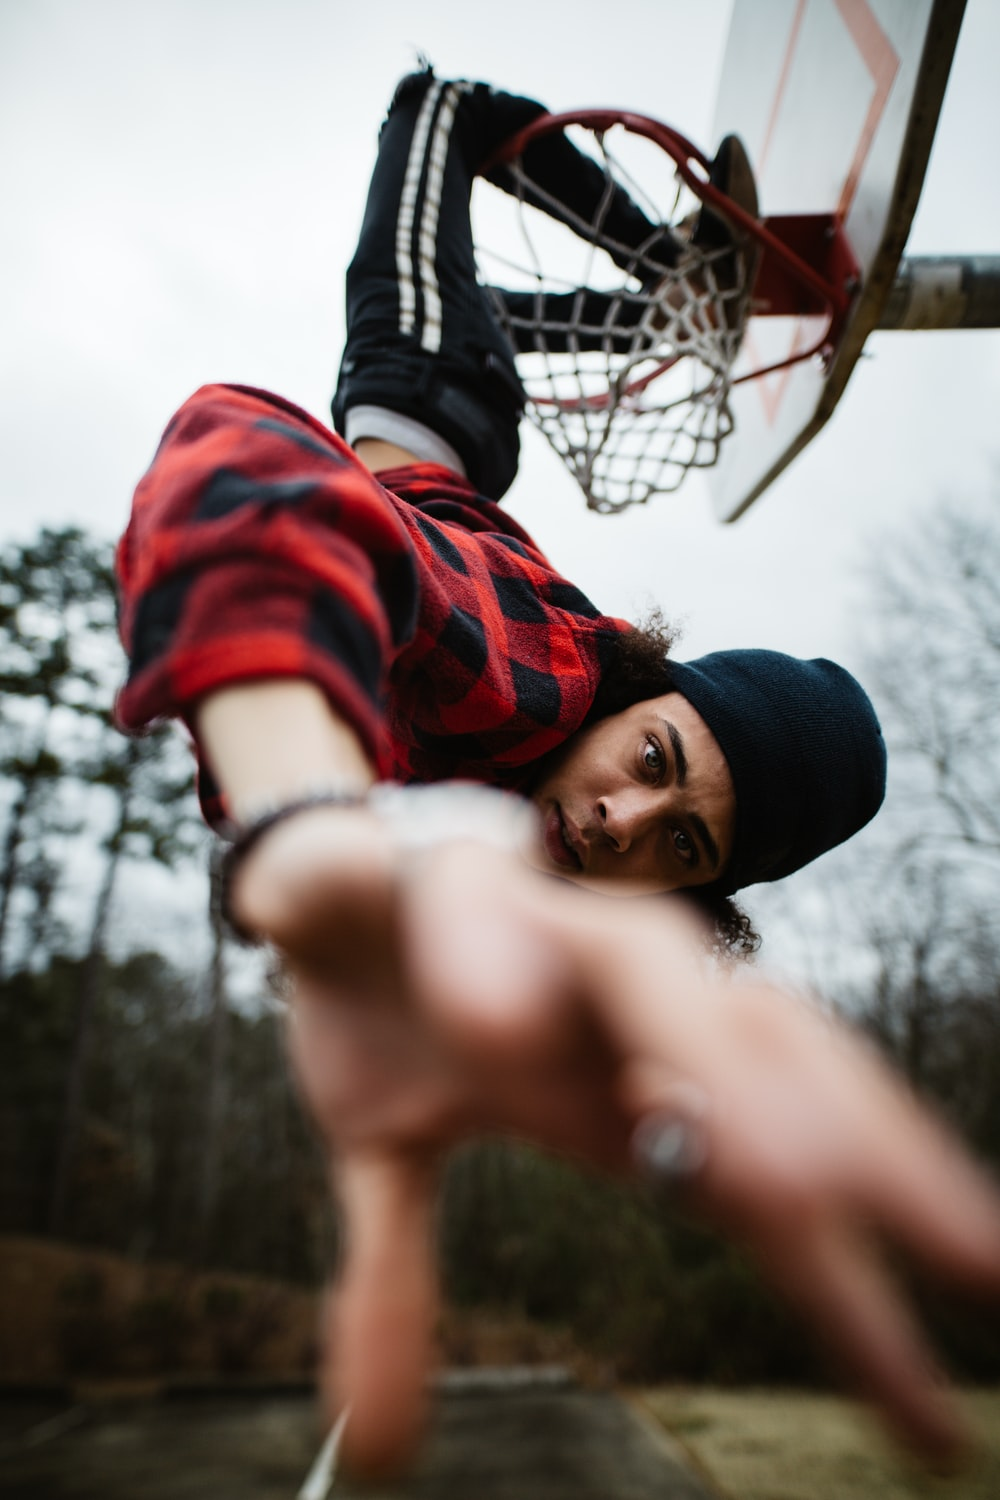 man with legs on basketball ring during daytime